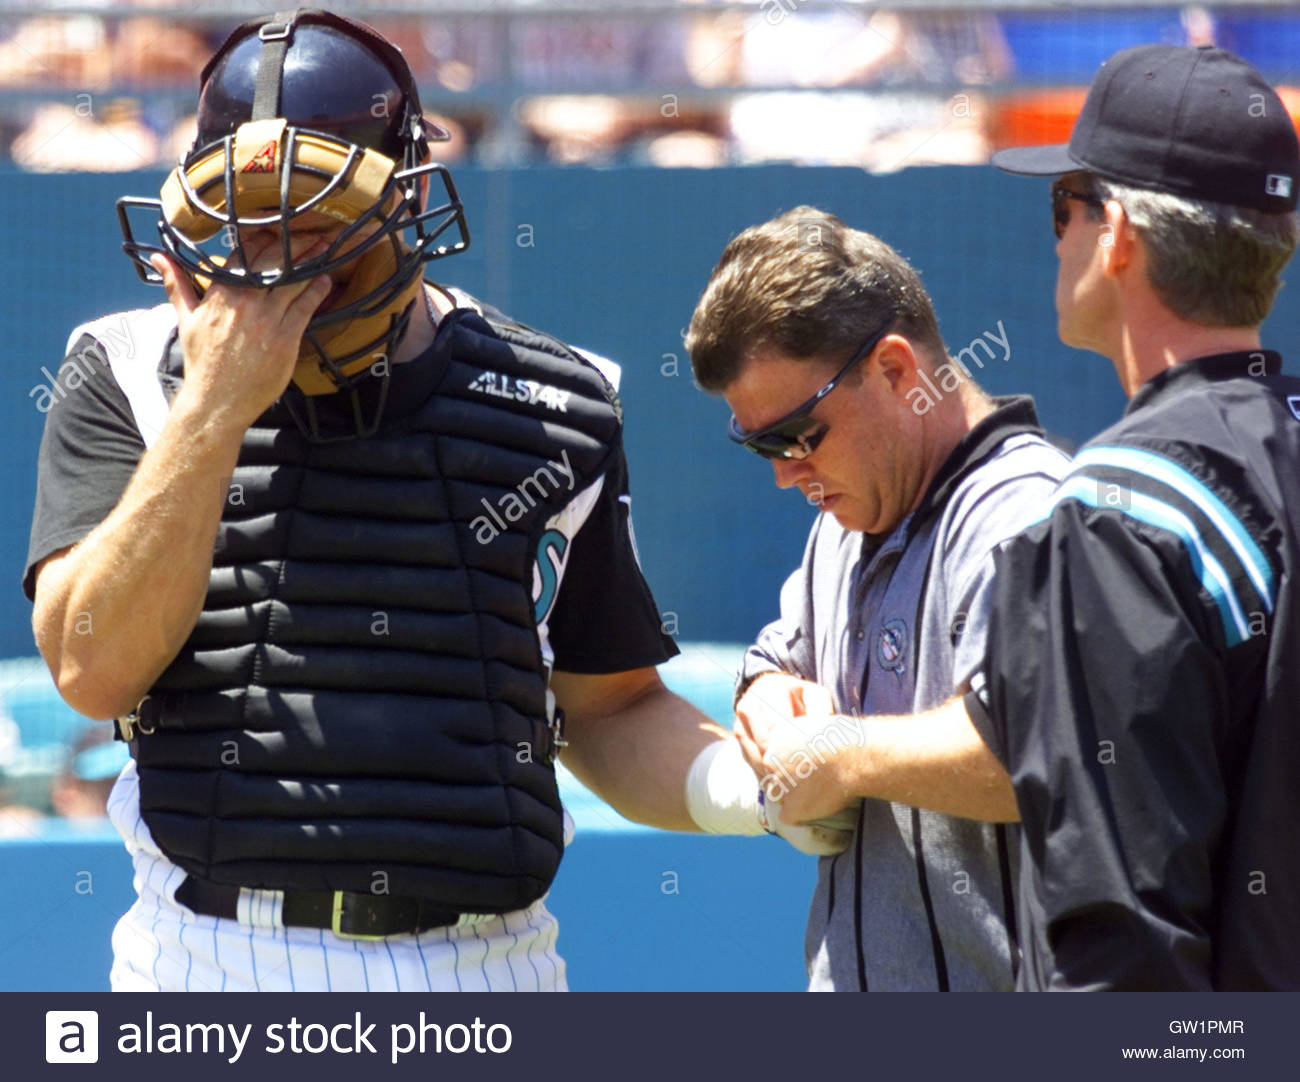 florida marlins catcher paul bako l reacts to the pain as florida marlins catcher paul bako l reacts to the pain as trainer larry starr c works on a dislocated finger 26 while manager john boles r